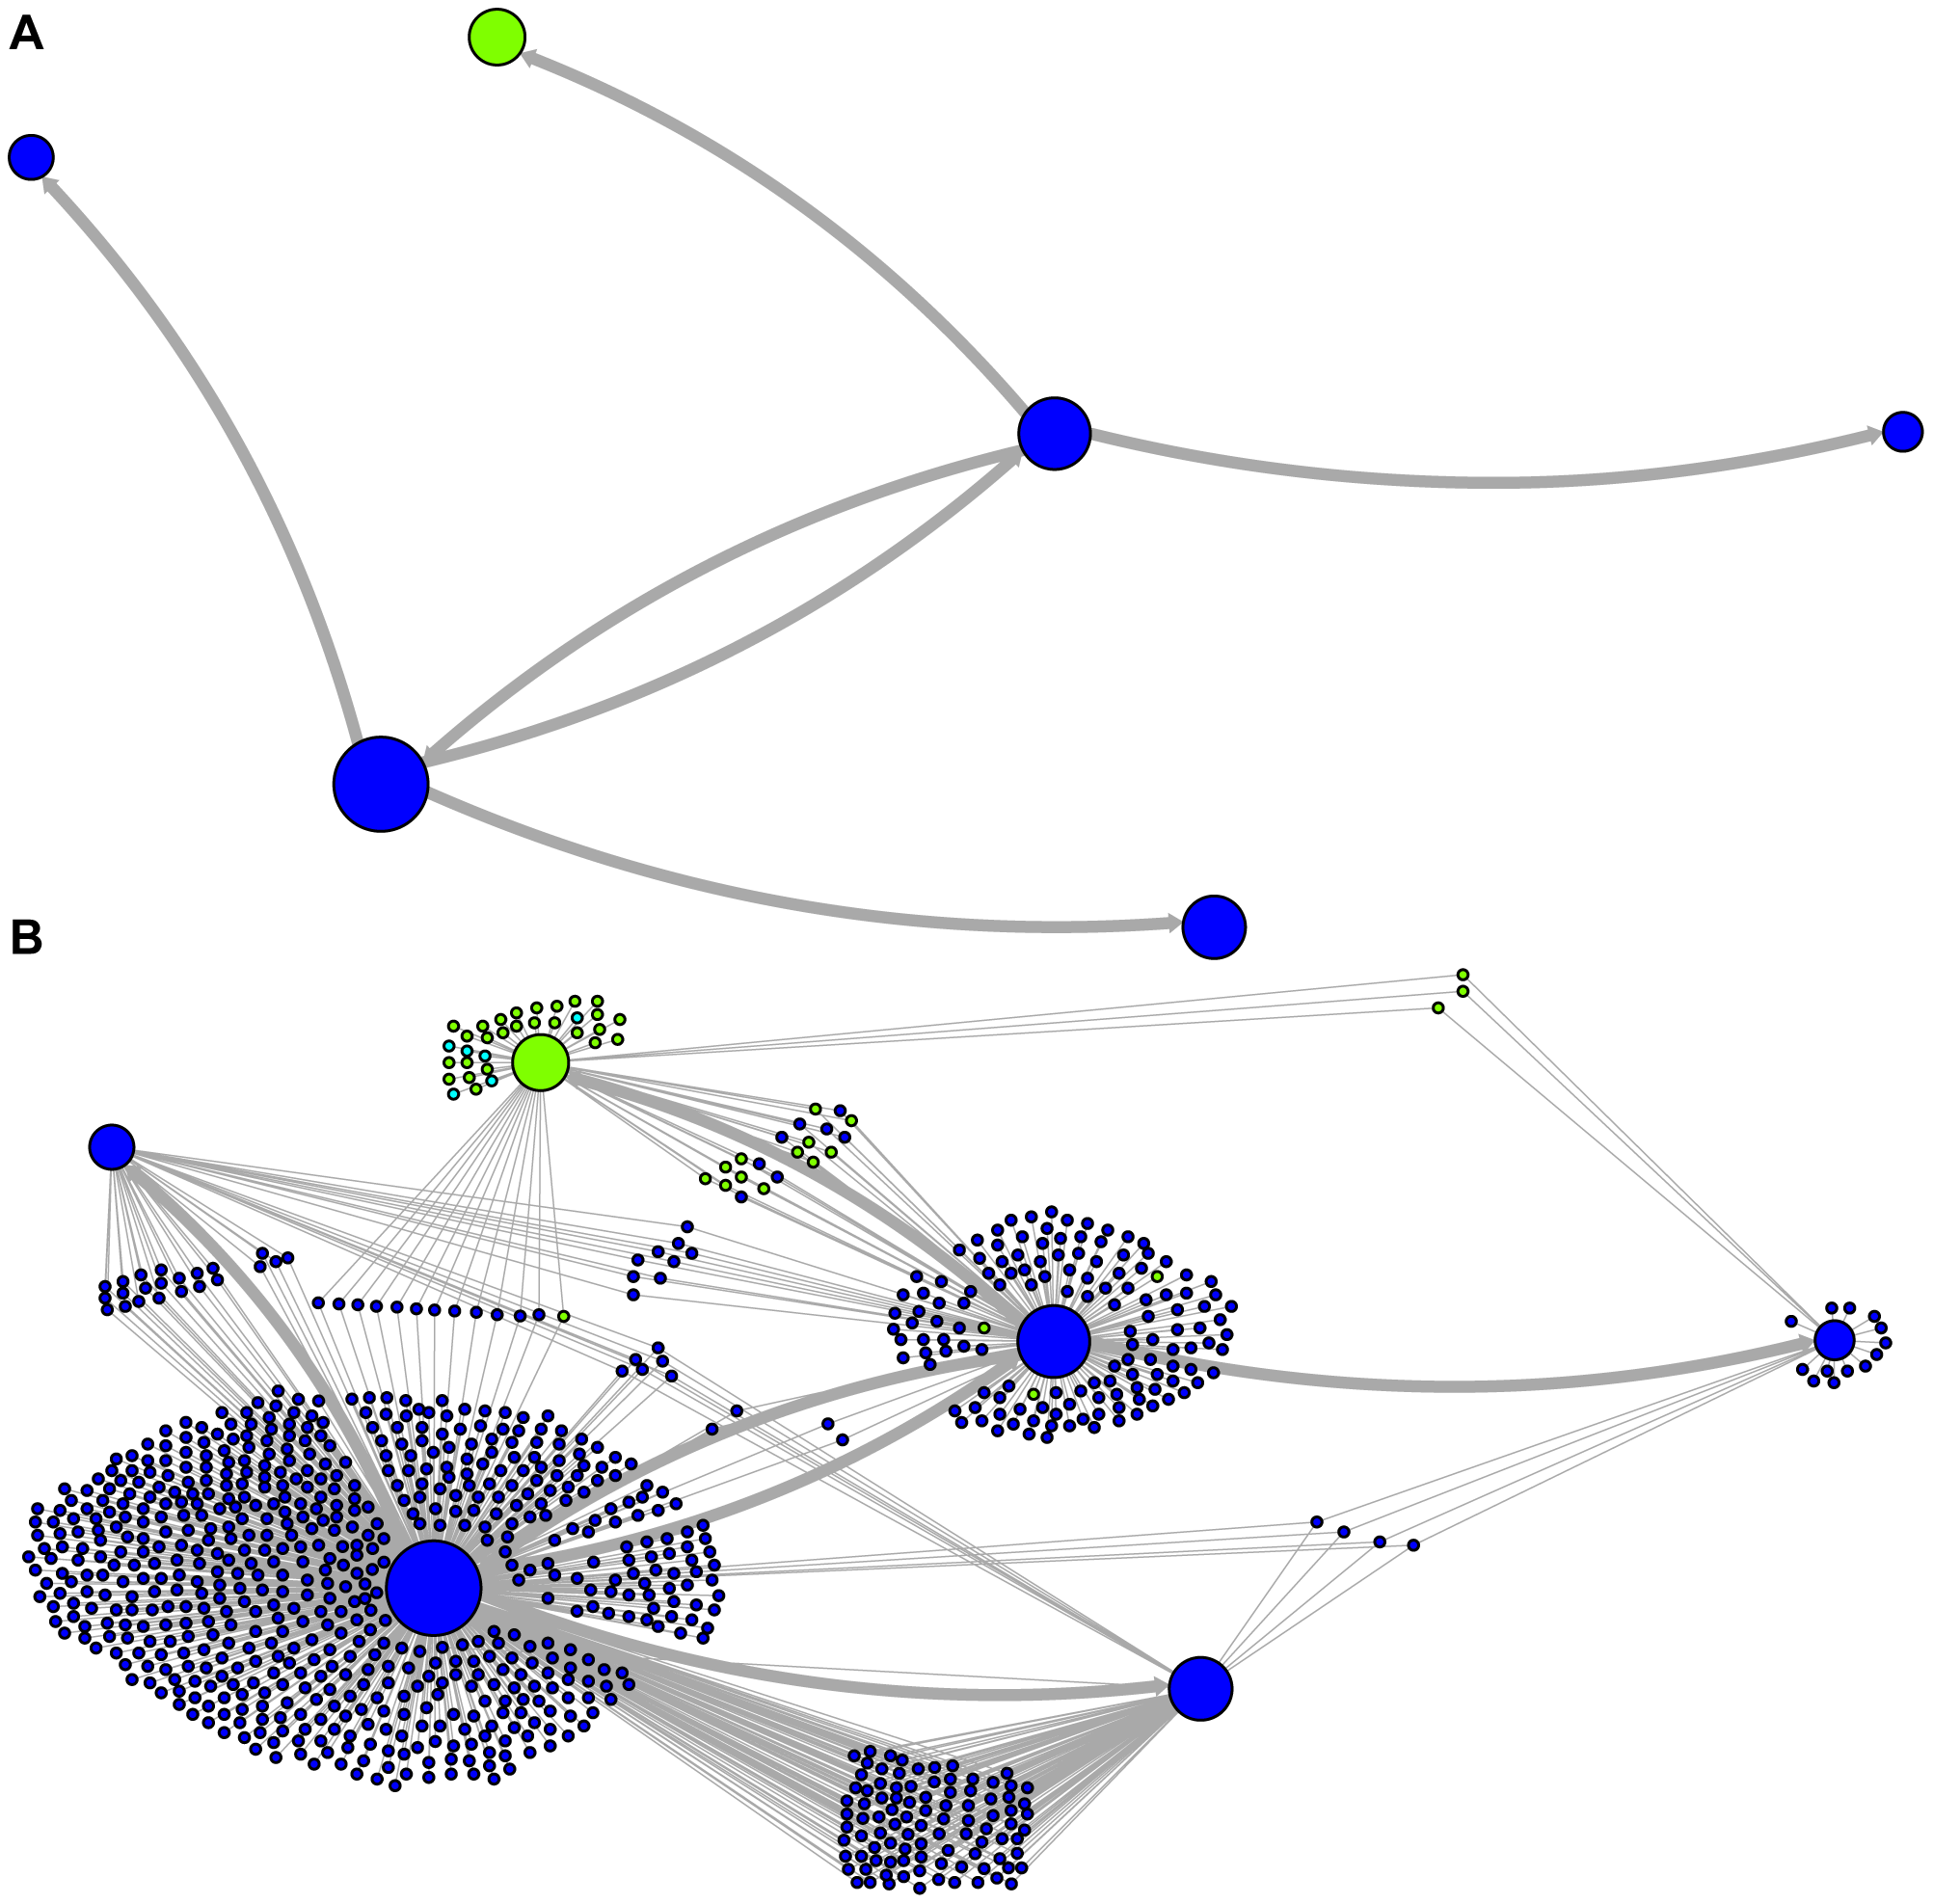 Ancestry networks of <i>Alu</i>Sc sequences.